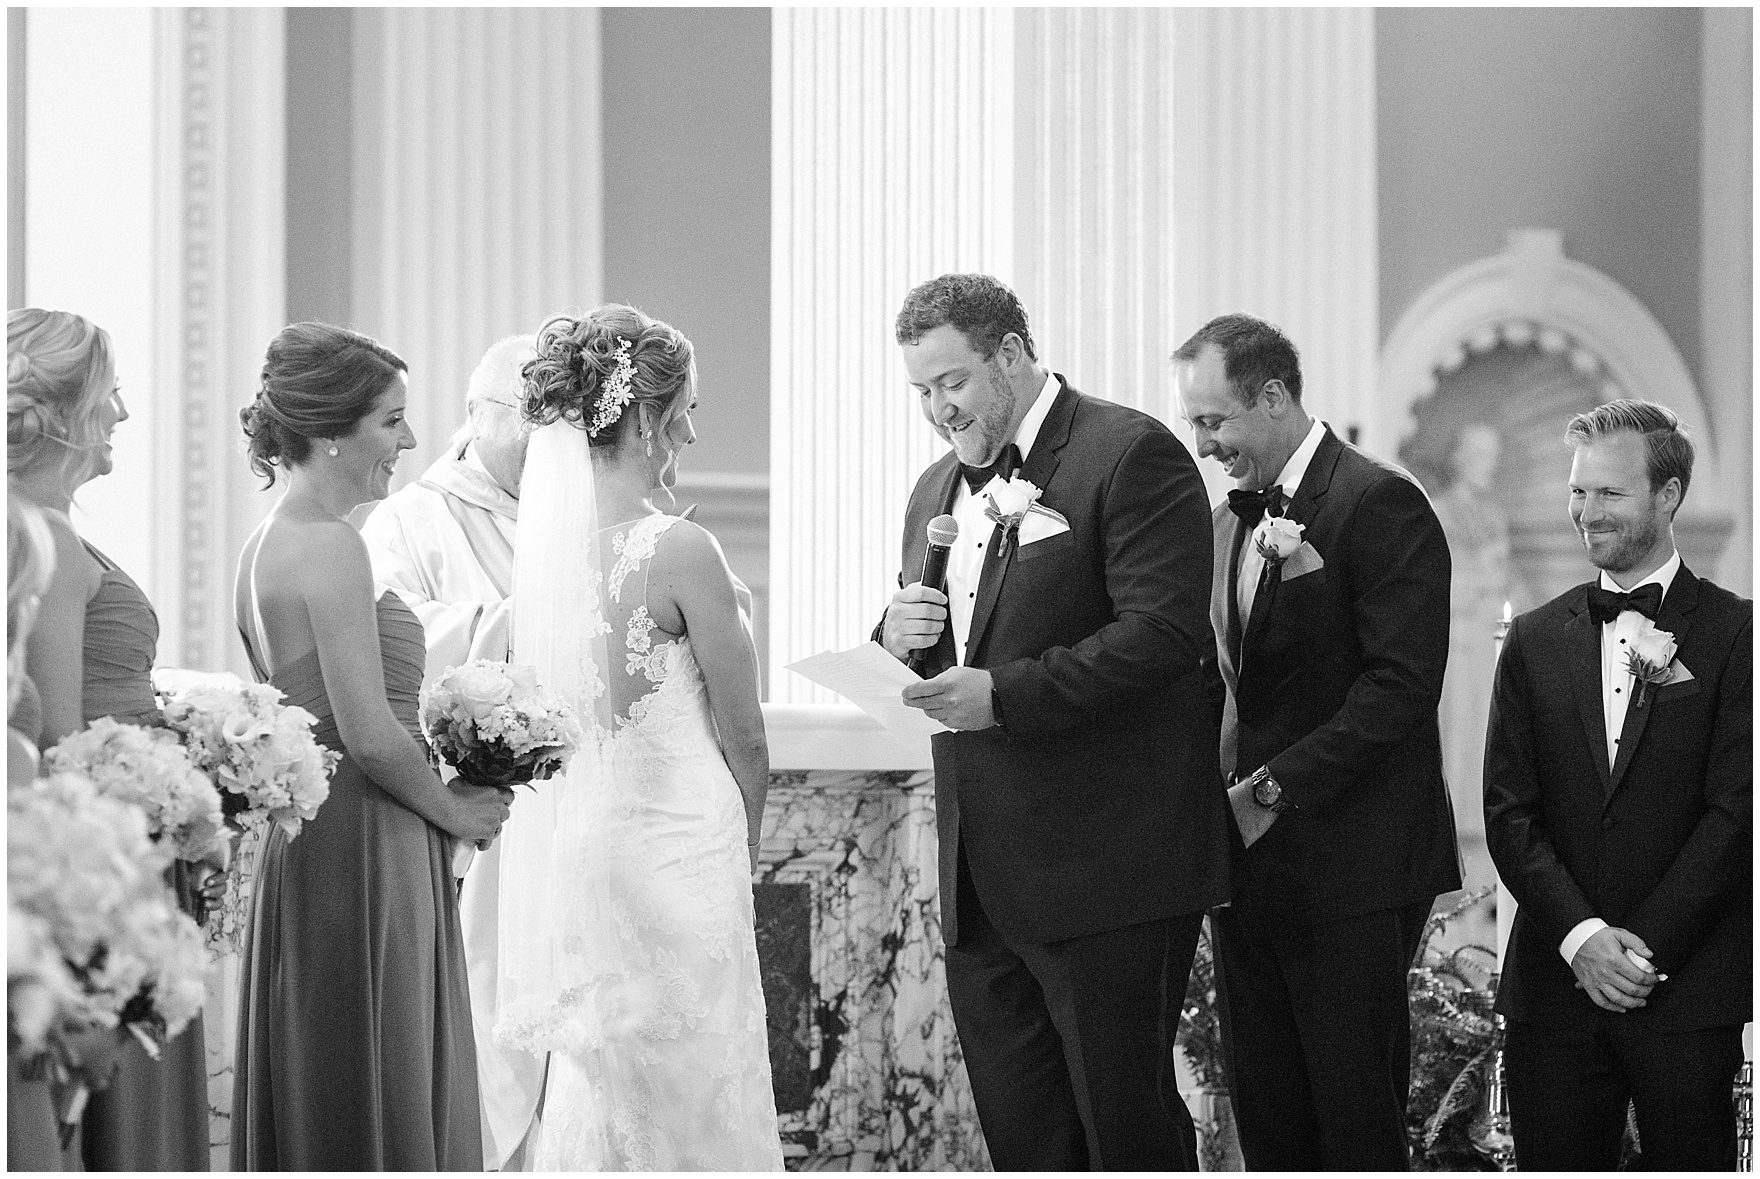 The bride and groom exchange vows during a Glen Club Glenview Illinois wedding.